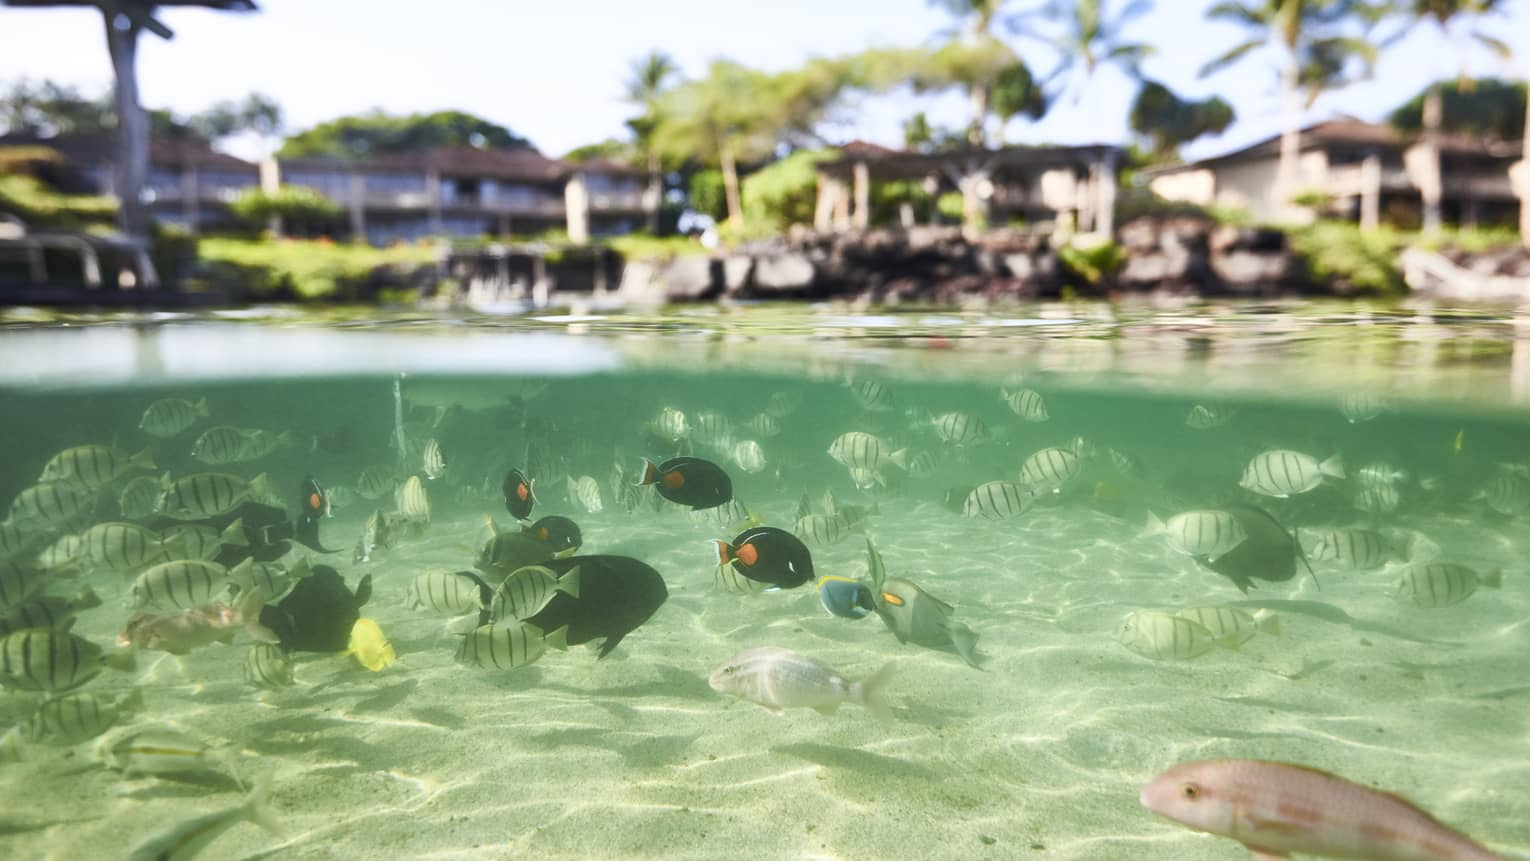 Schools of fish swim in the shallow waters near Four Seasons Resort Hualalai